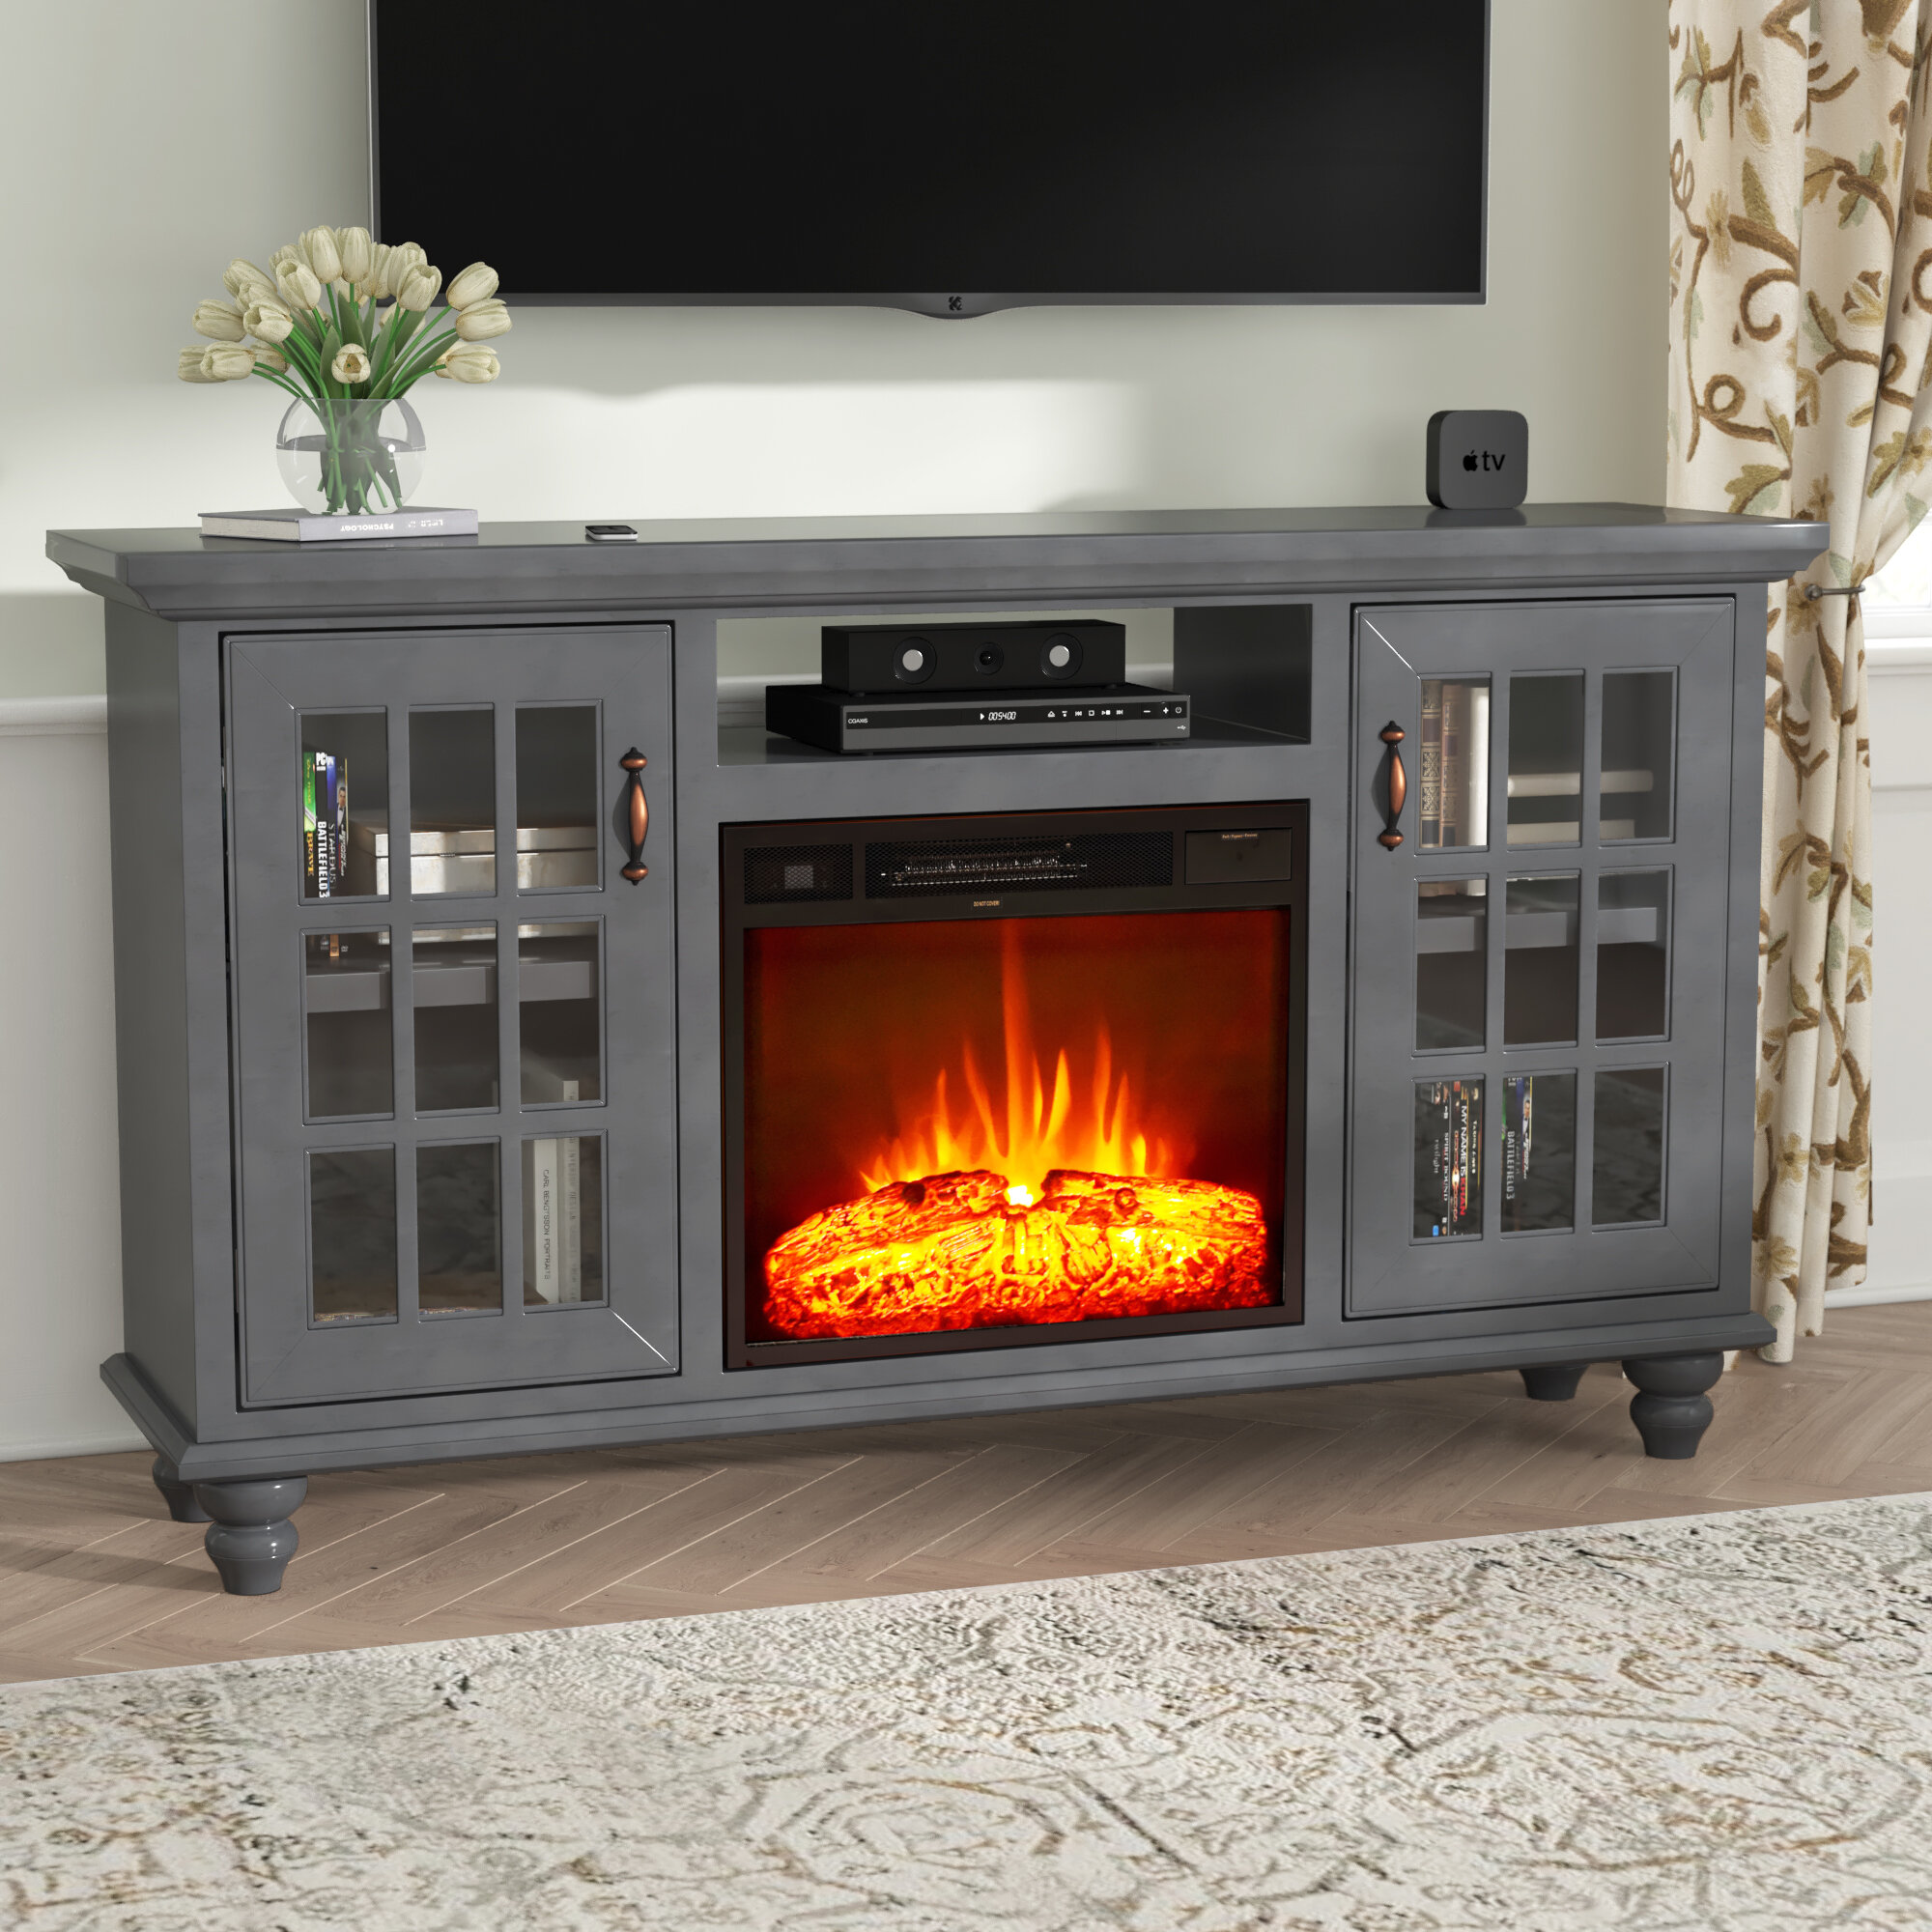 Darby Home Co Blackwell Modern Country Tv Stand For Tvs Up To 60